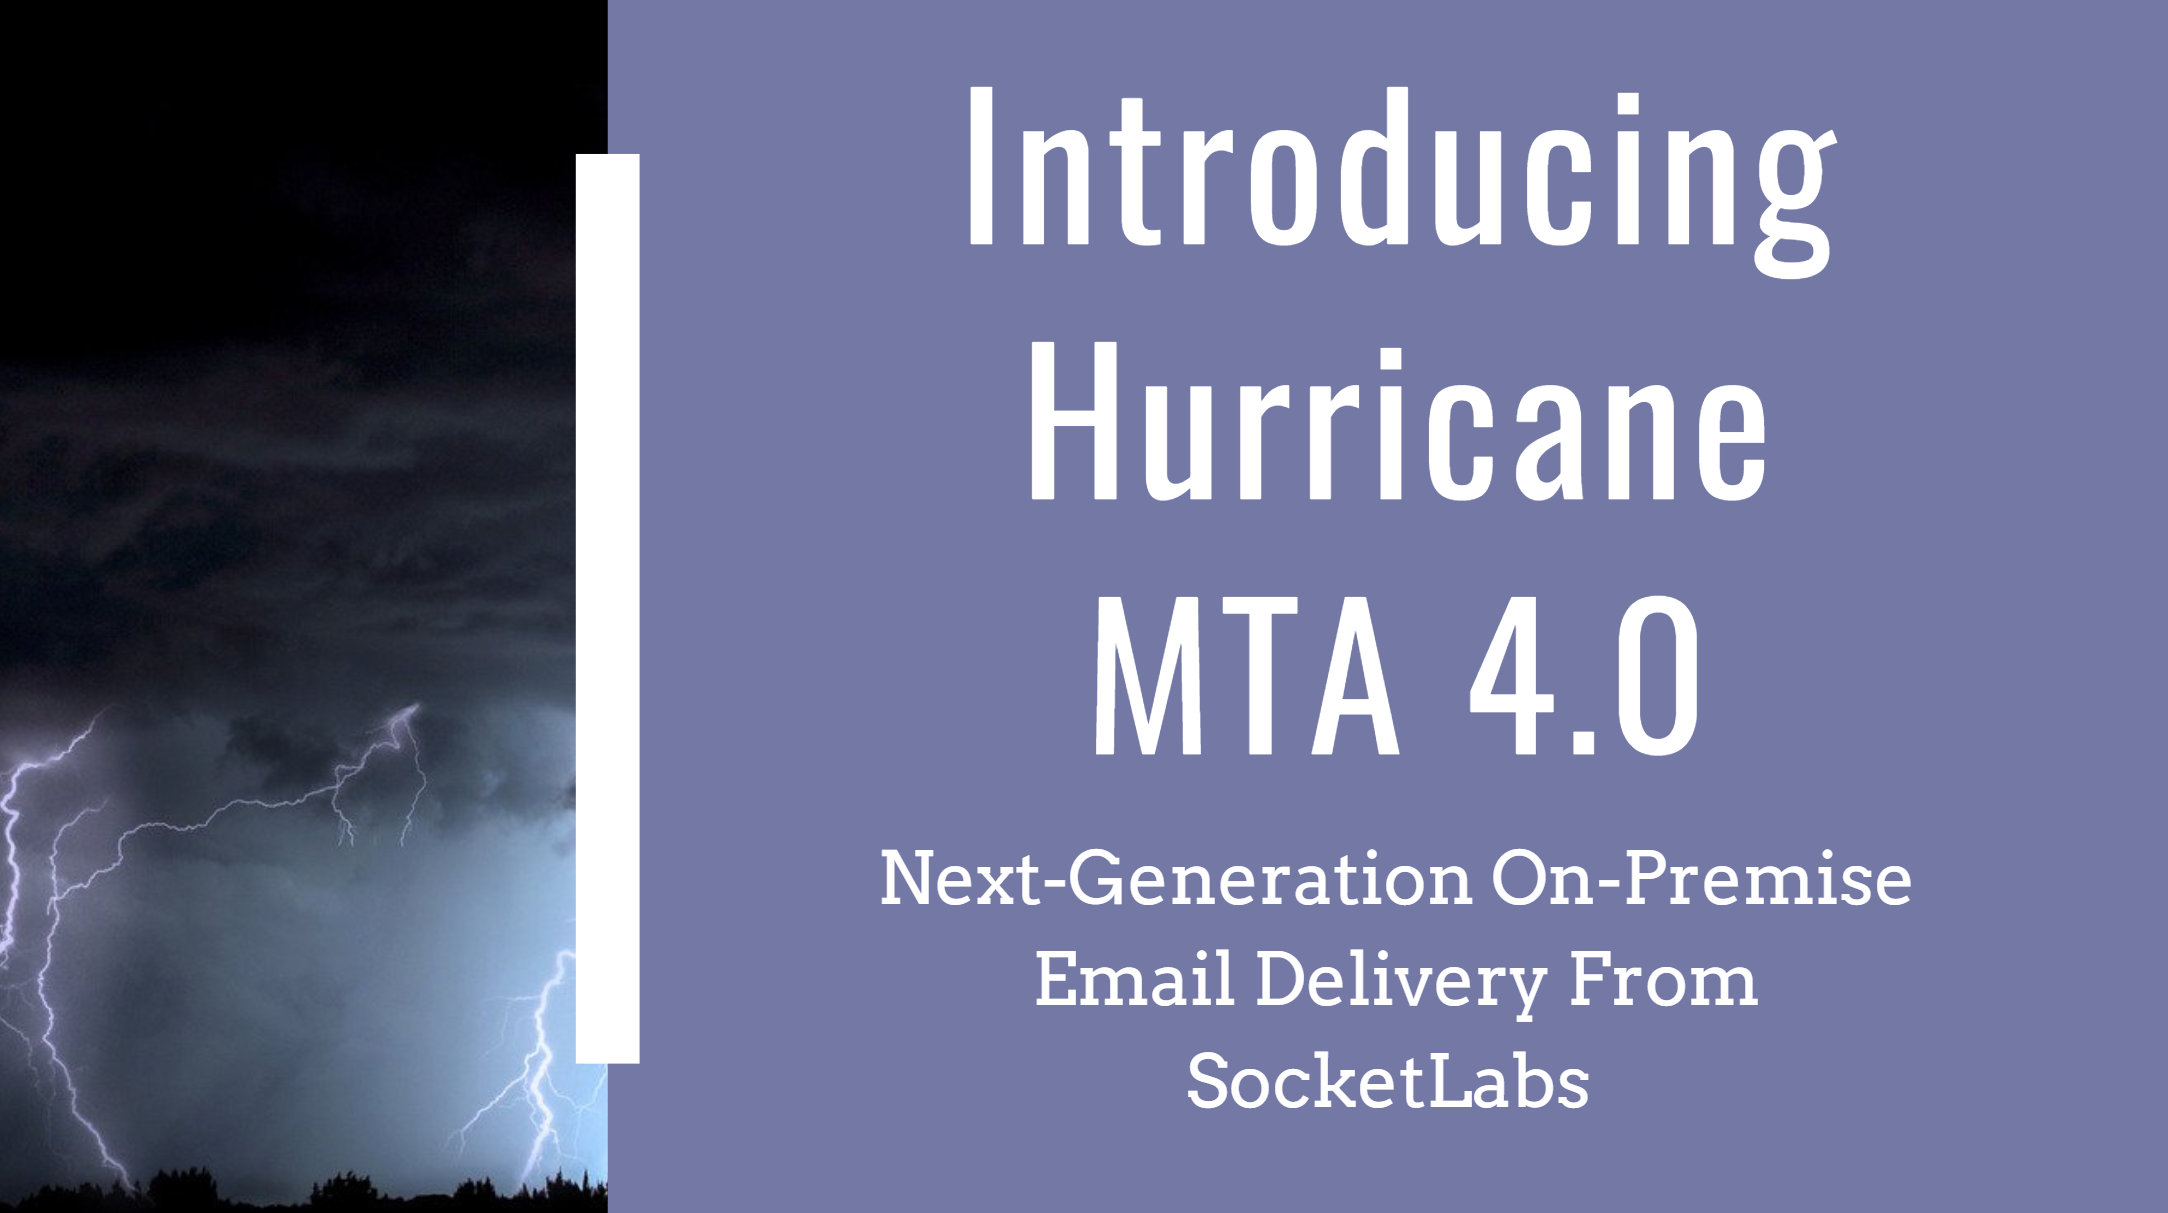 New SocketLabs On-Premise Email Server: Hurricane MTA 4.0